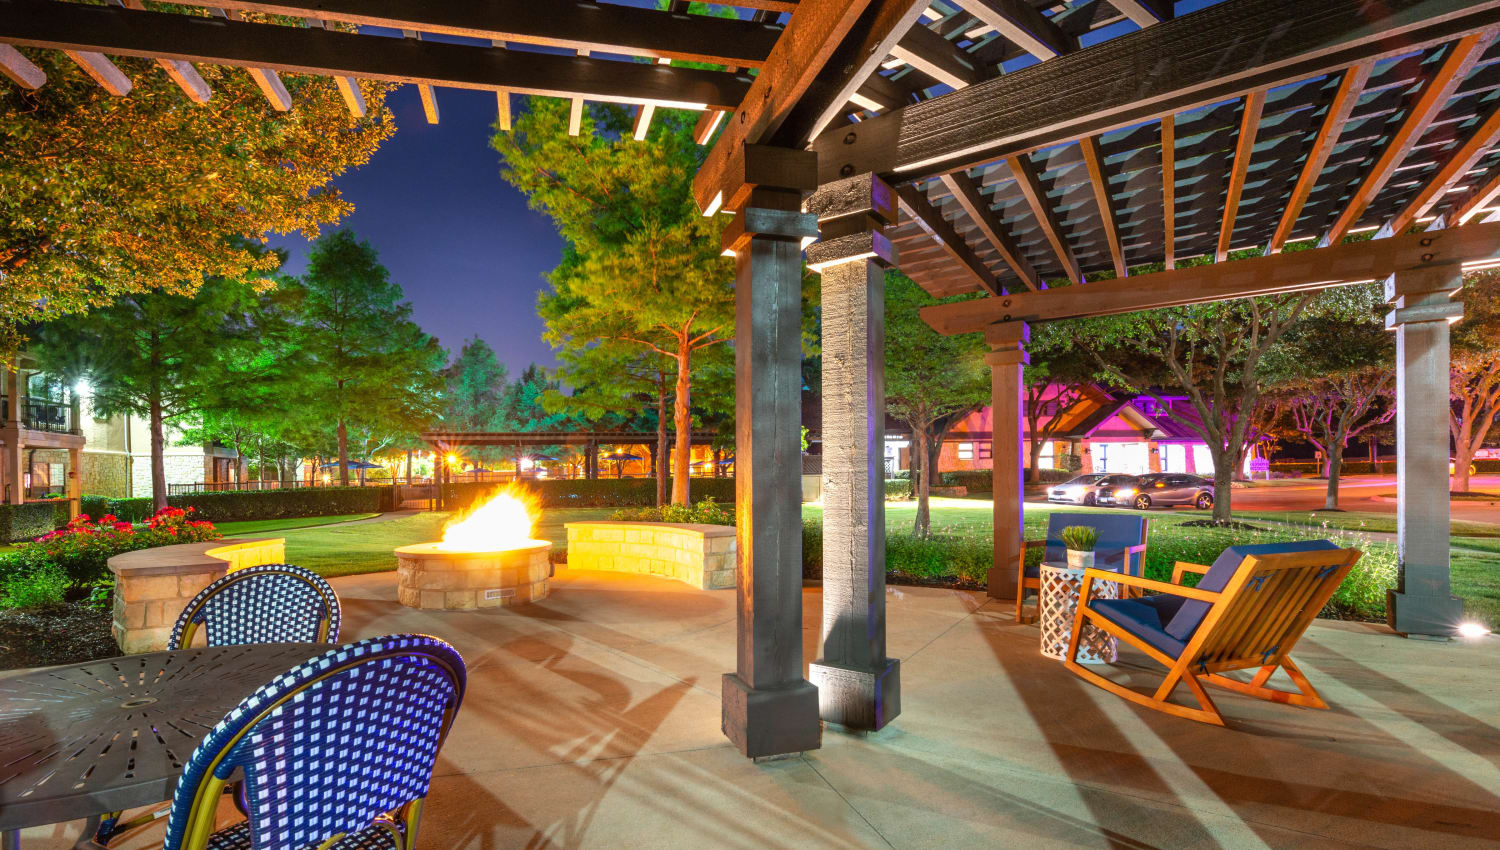 Lounge seating near the fire pit in the evening at Olympus Town Center in Keller, Texas